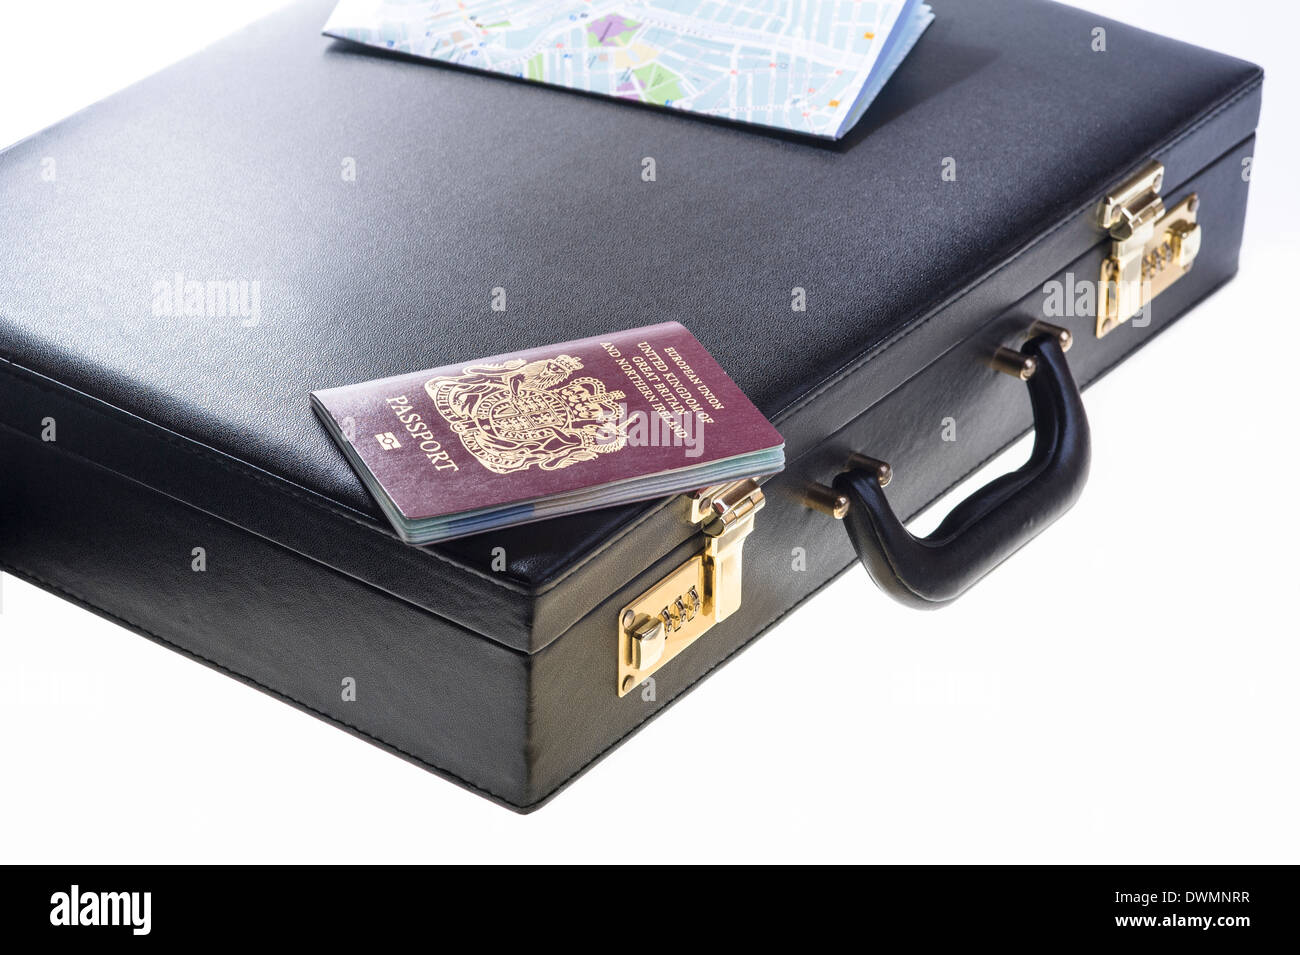 Business persons briefcase with UK passport and street map. - Stock Image